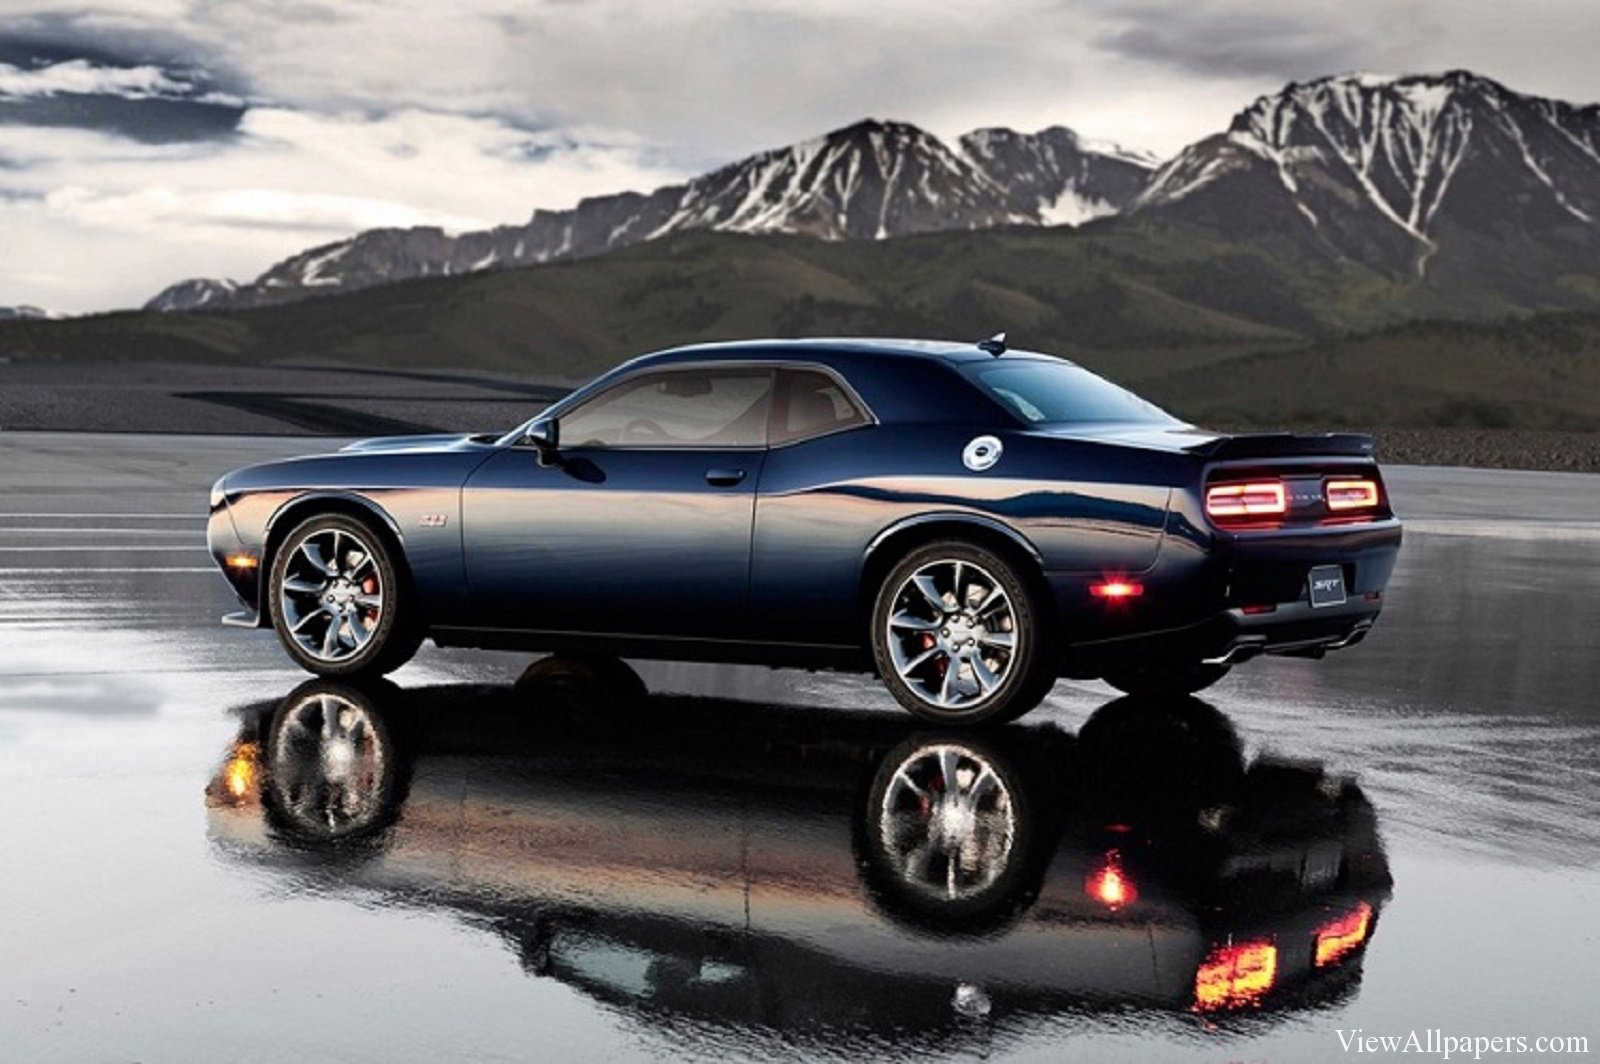 2016 Dodge Challenger Images High Resolution Wallpaper download 1600x1064